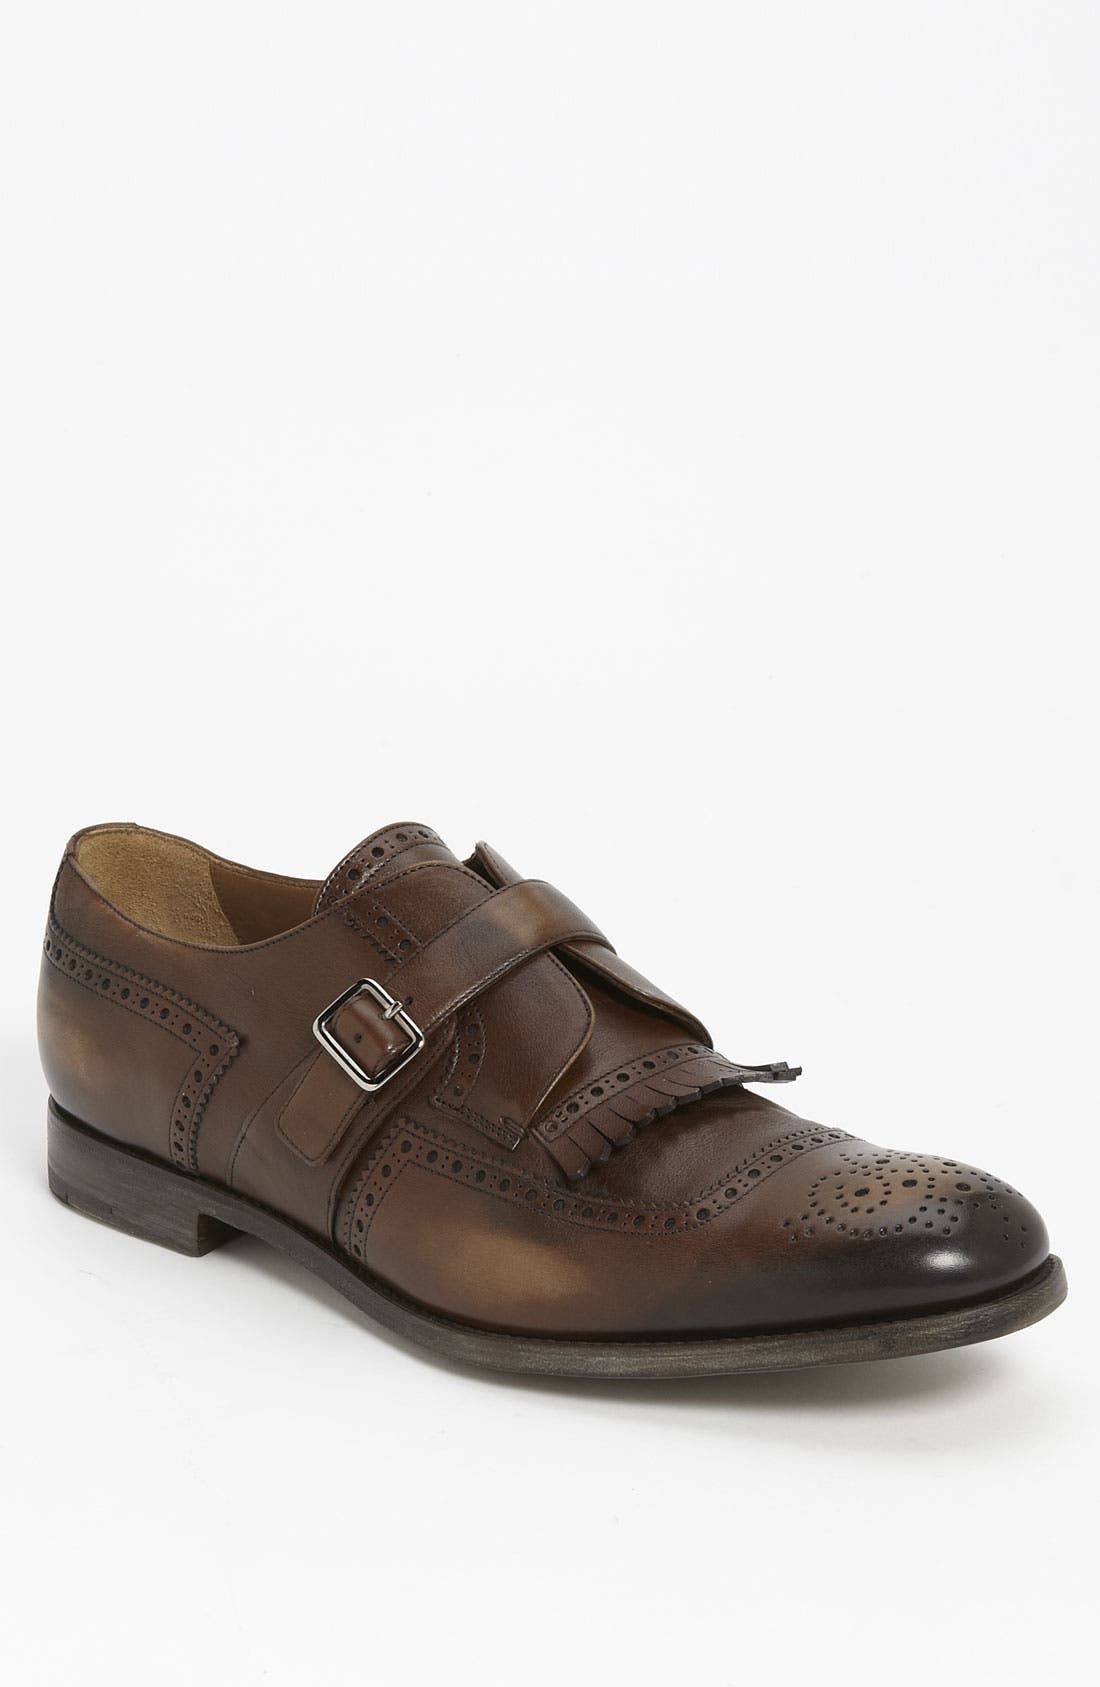 Alternate Image 1 Selected - Prada Kiltie Wingtip Slip-On (Online Only)